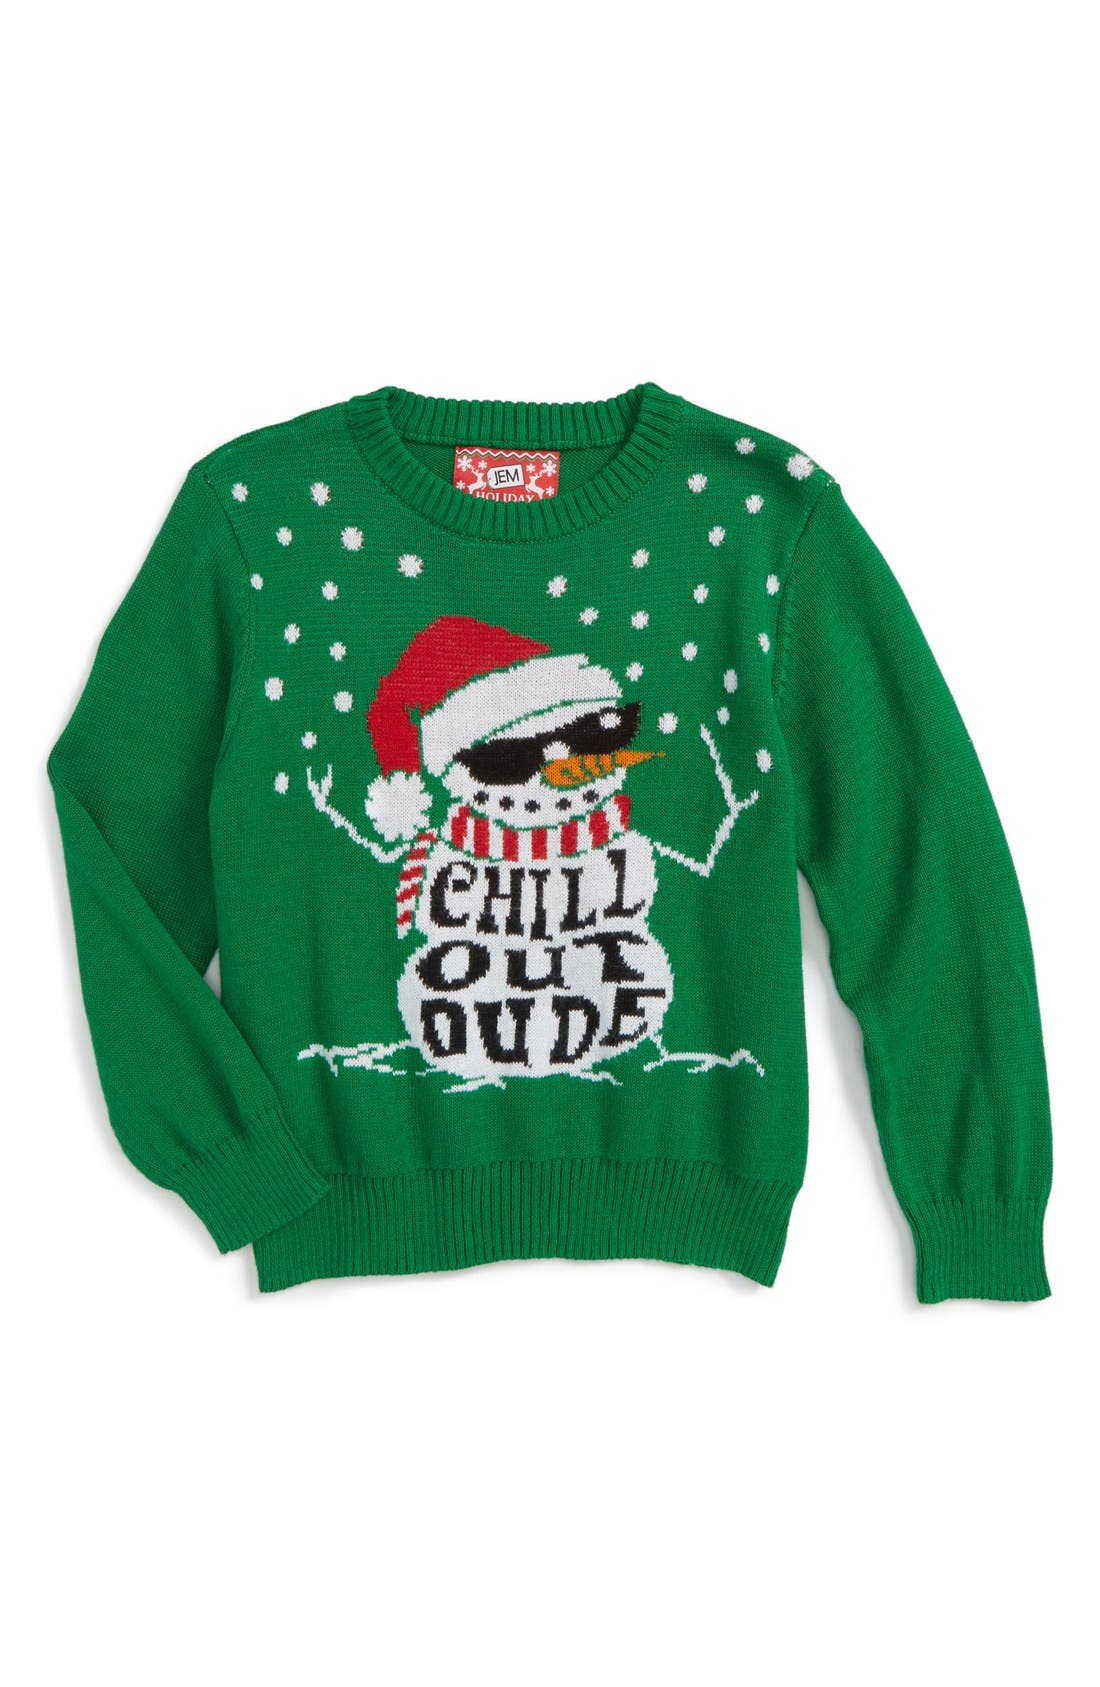 Main Image - Jem Chill Out Dude Sweater (Toddler Boys & Little Boys)